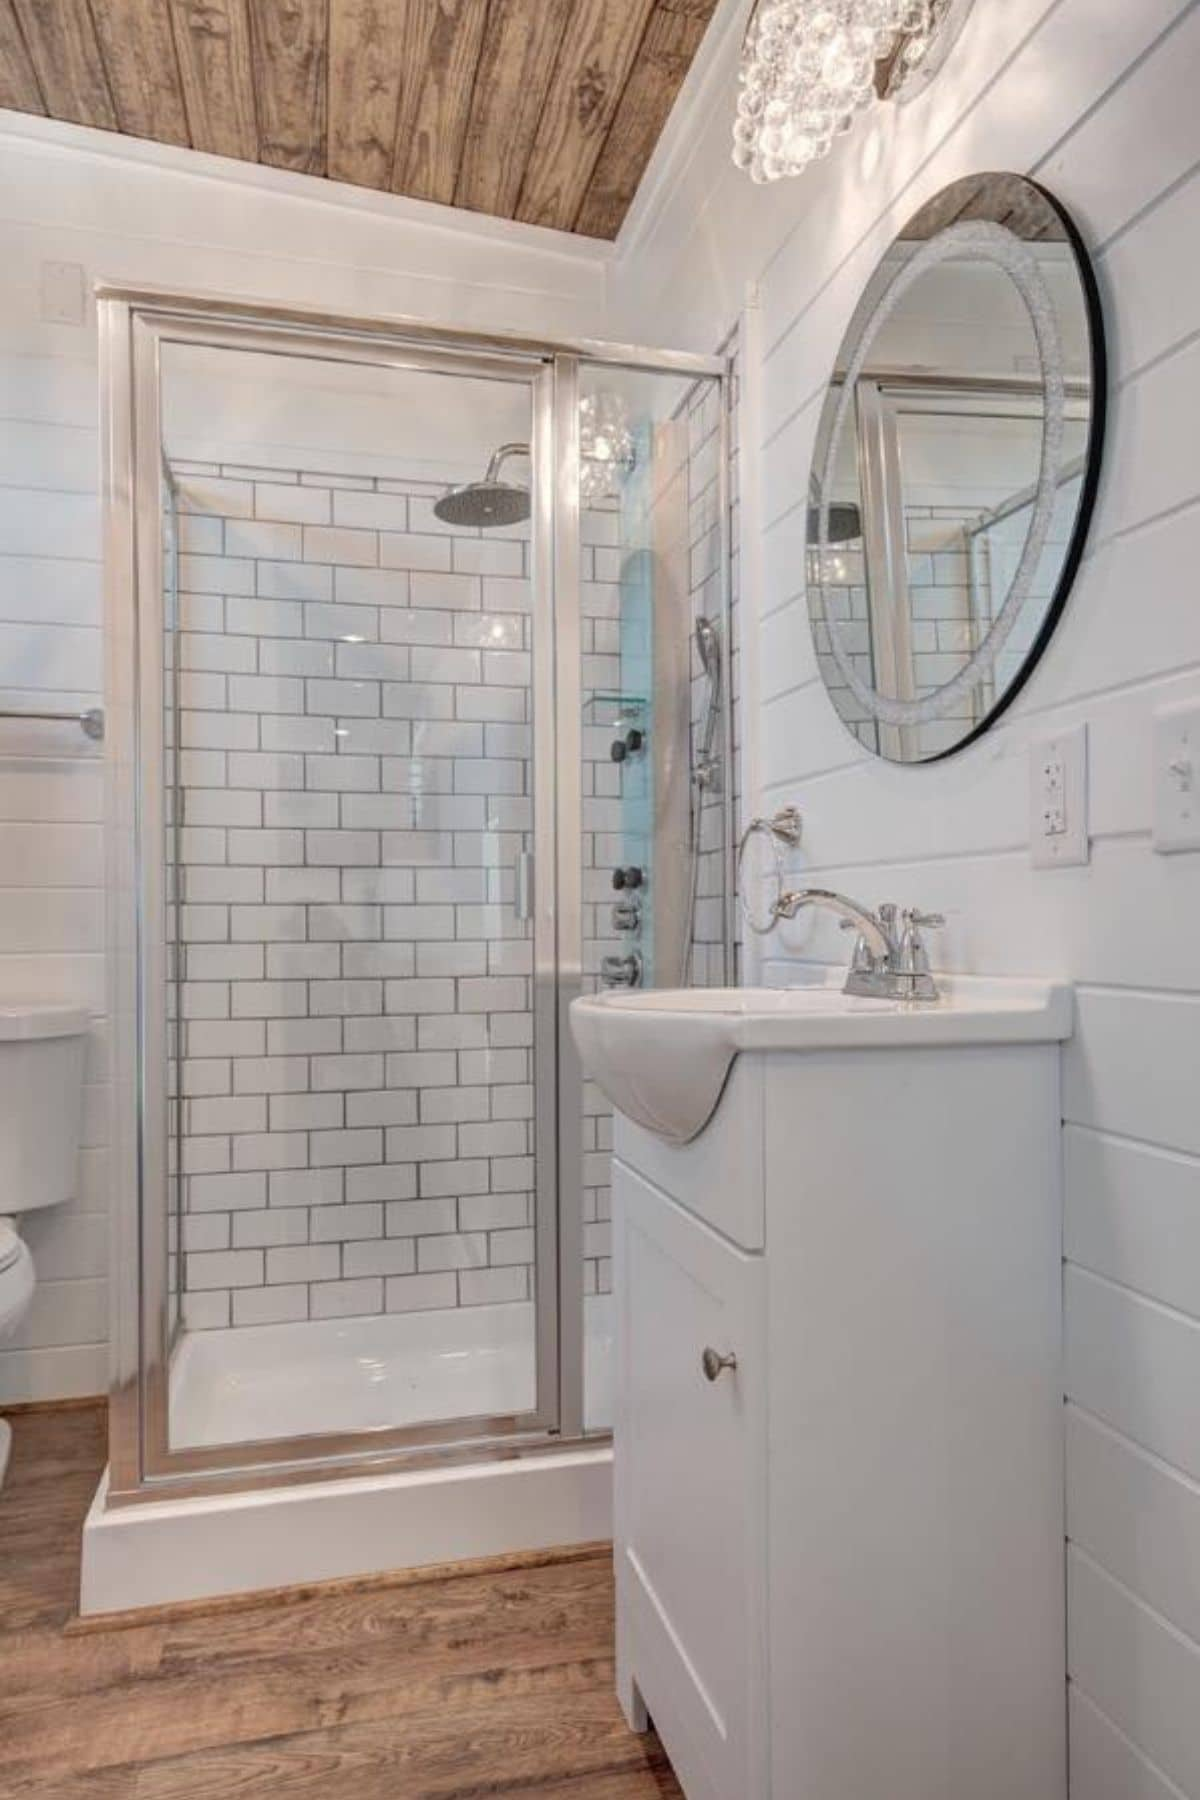 View into bathroom from door showing large shower stall with glass doors